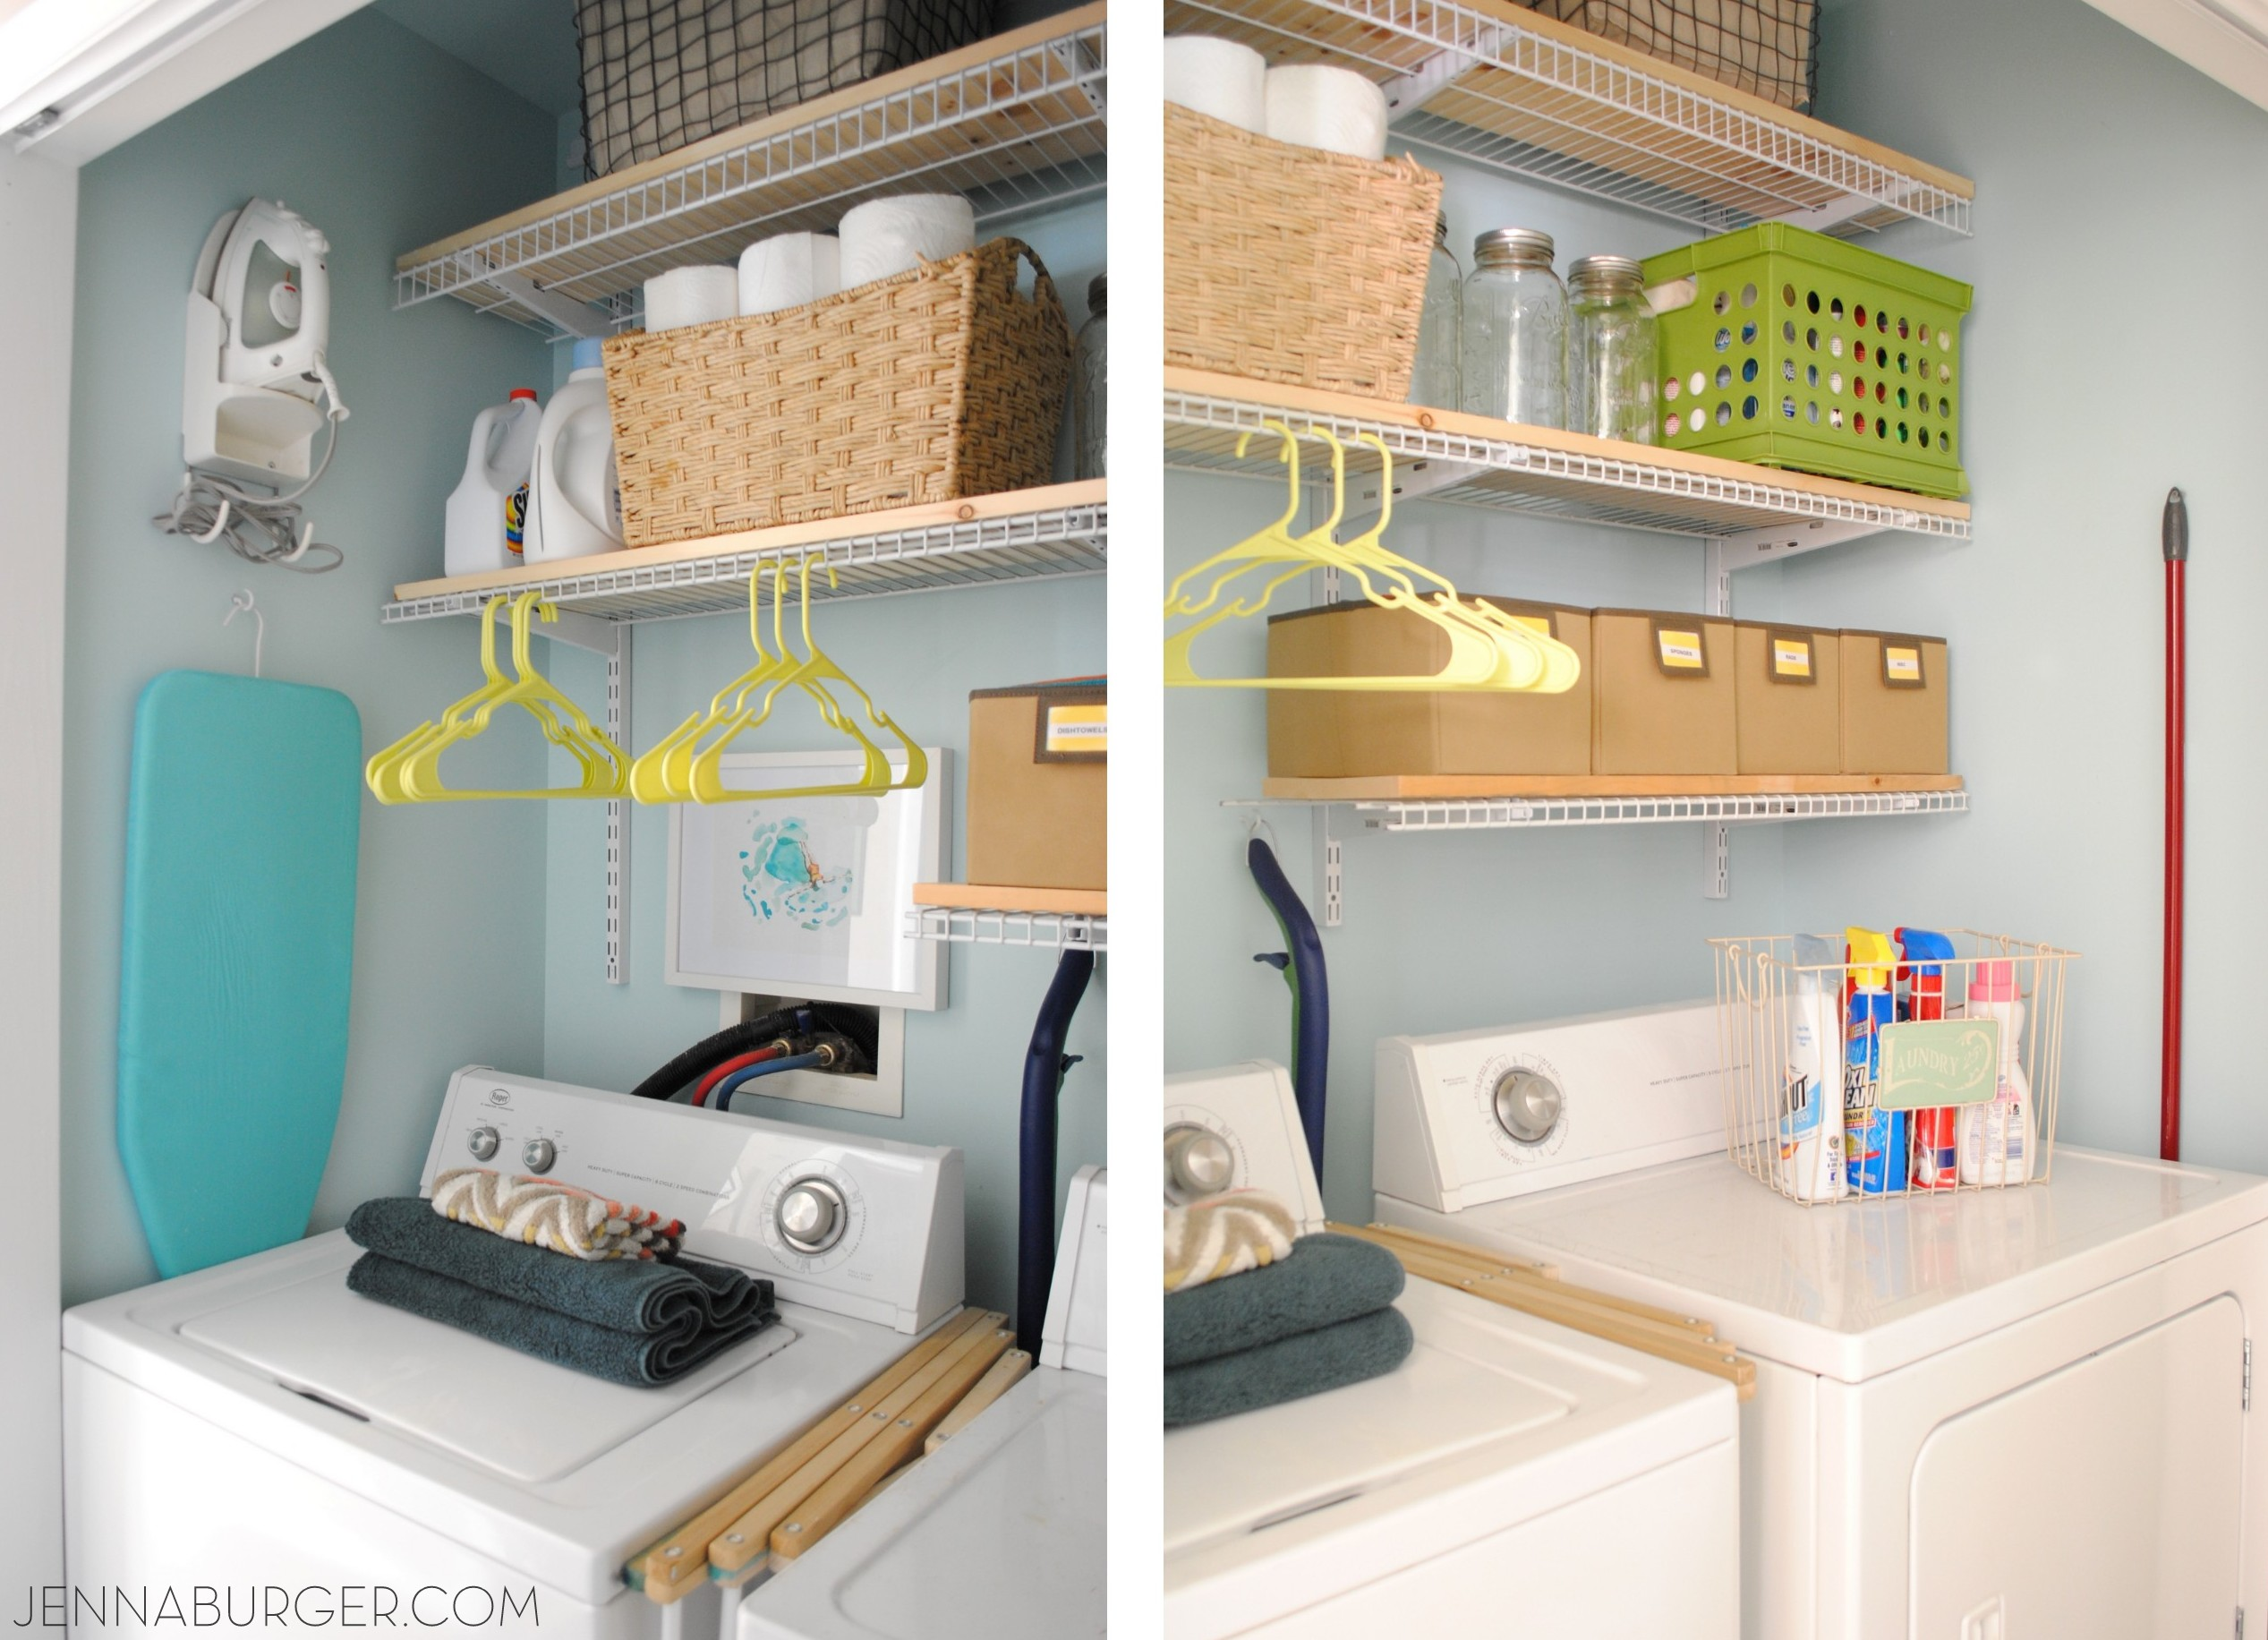 how to design a laundry room 10 clever storage ideas for you